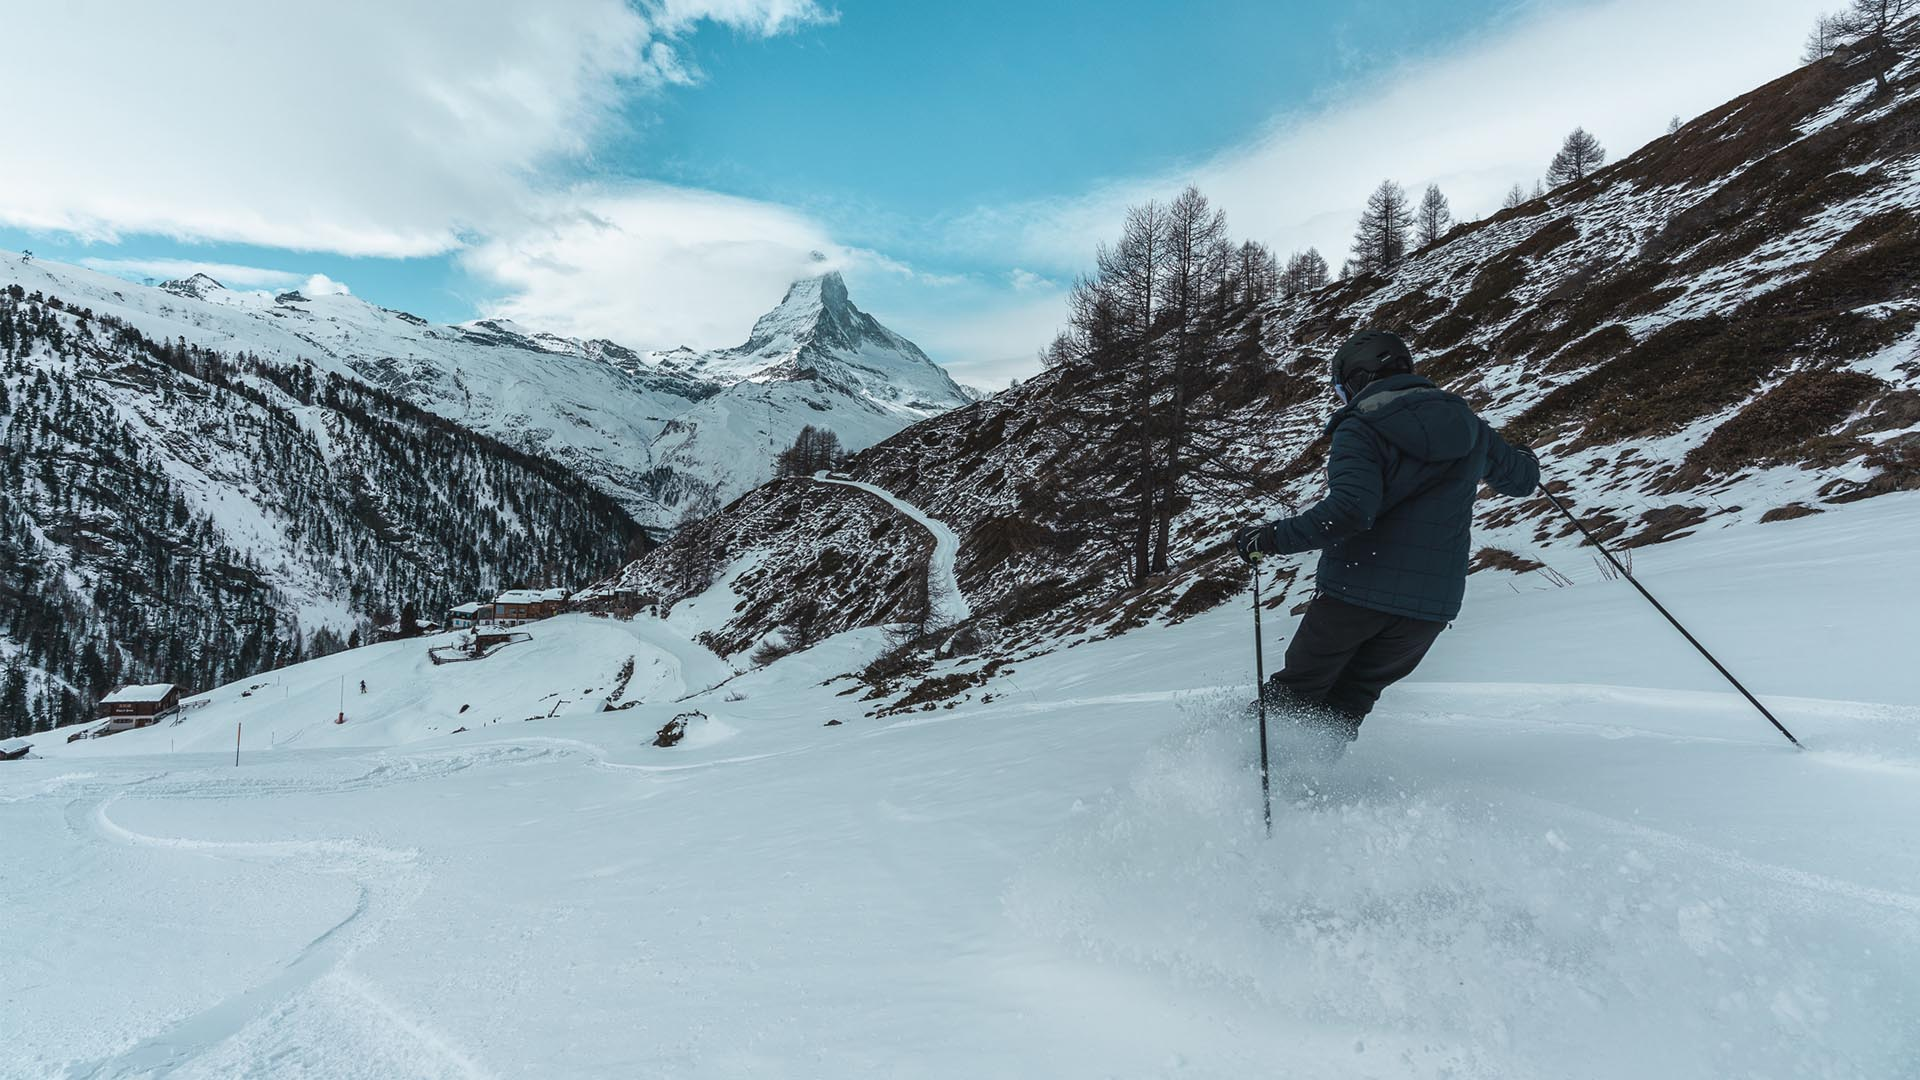 5 Swiss ski resorts for your winter wish list